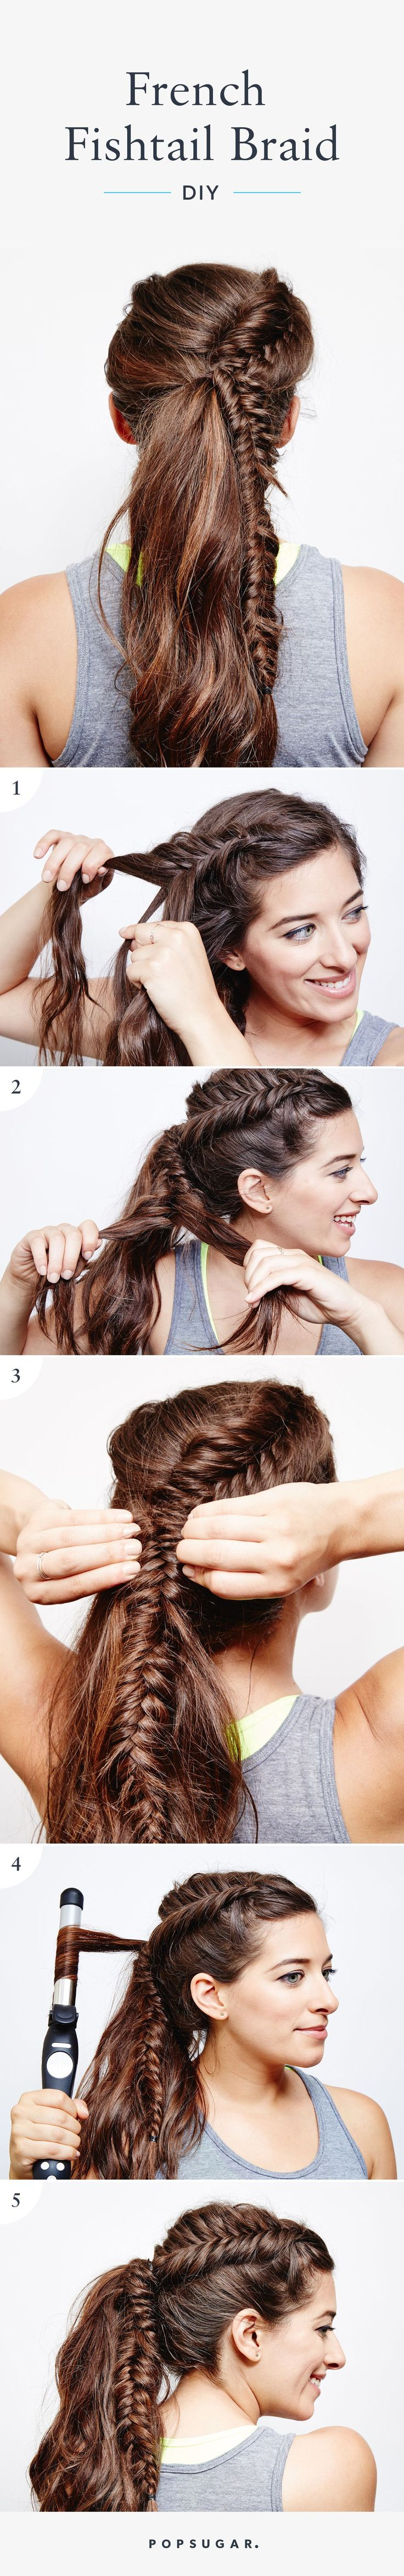 Wear this French Fishtail Braid for your next cardio class!